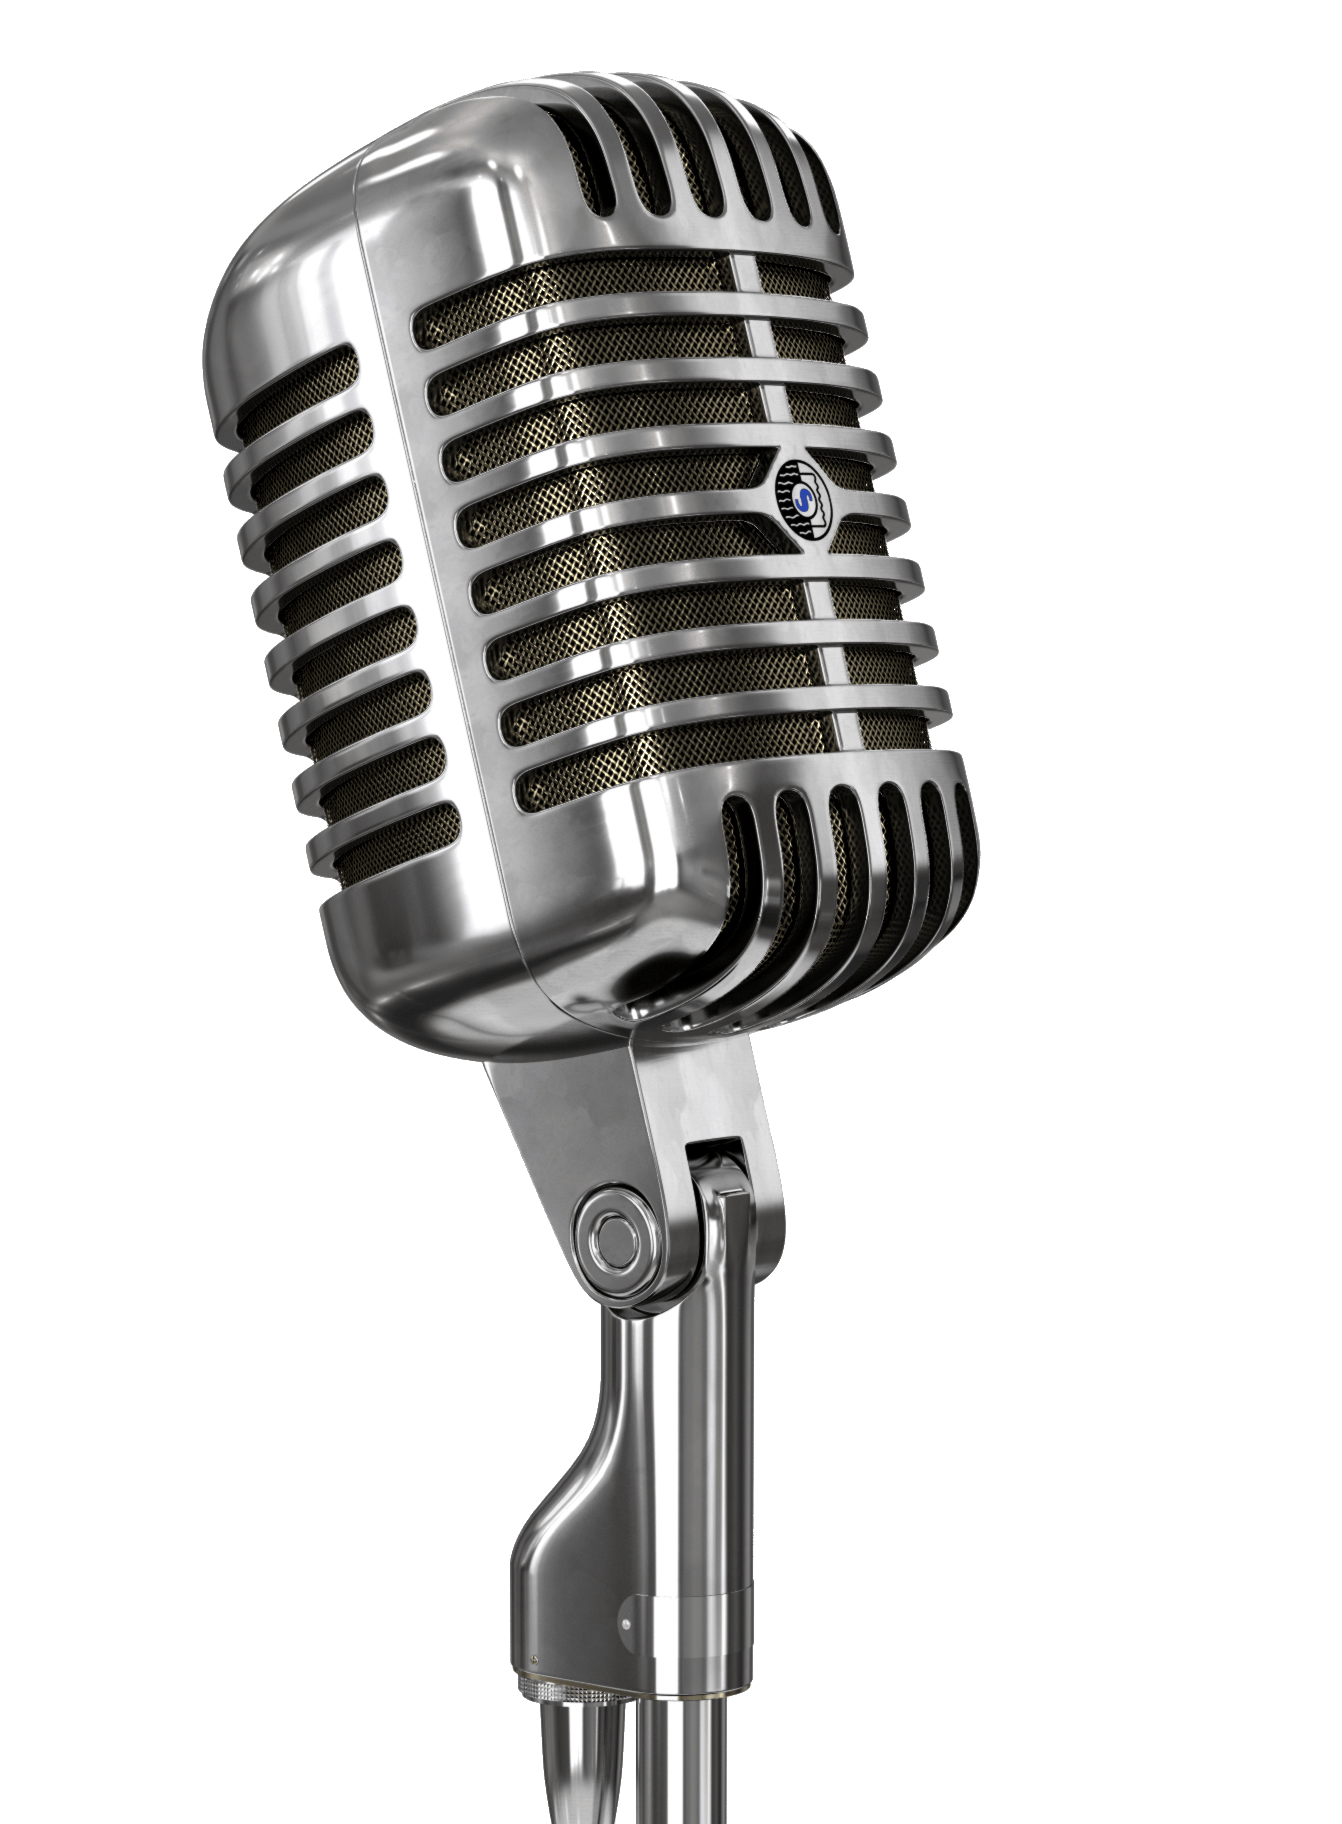 78f63ea4c Vintage Microphone and Stand transparent PNG - StickPNG